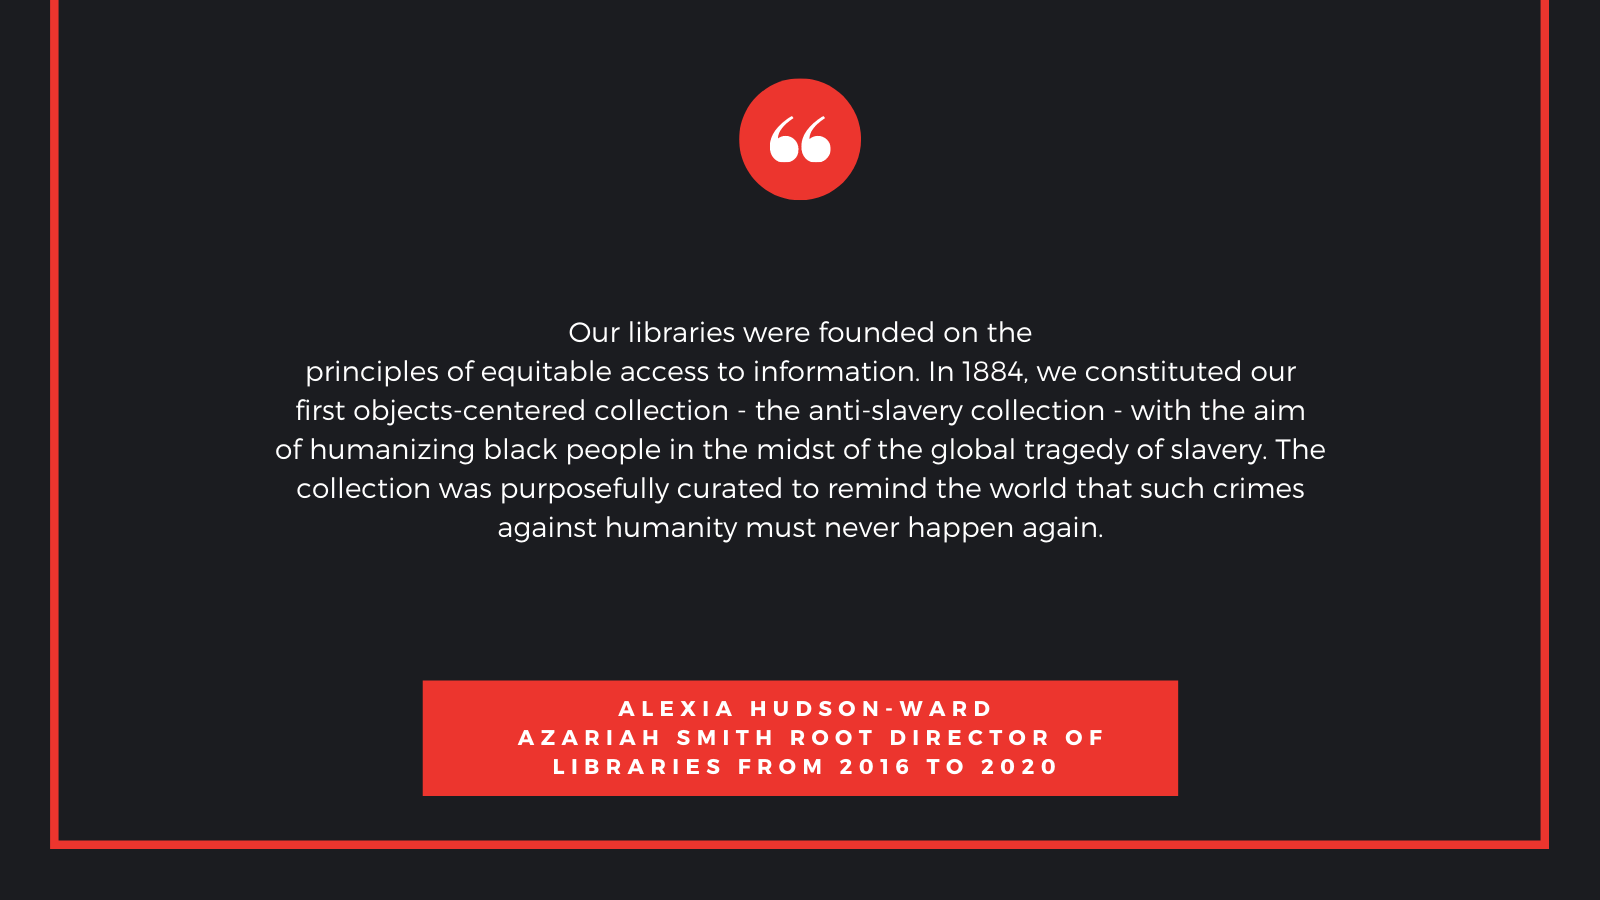 Our libraries were founded on the principles of equitable access to information. In 1884, we constituted our first objects-centered collection - the anti-slavery collection - with the aim of humanizing black people in the midst of the global tragedy of slavery. The collection was purposefully curated to remind the world that such crimes against humanity must never happen again.